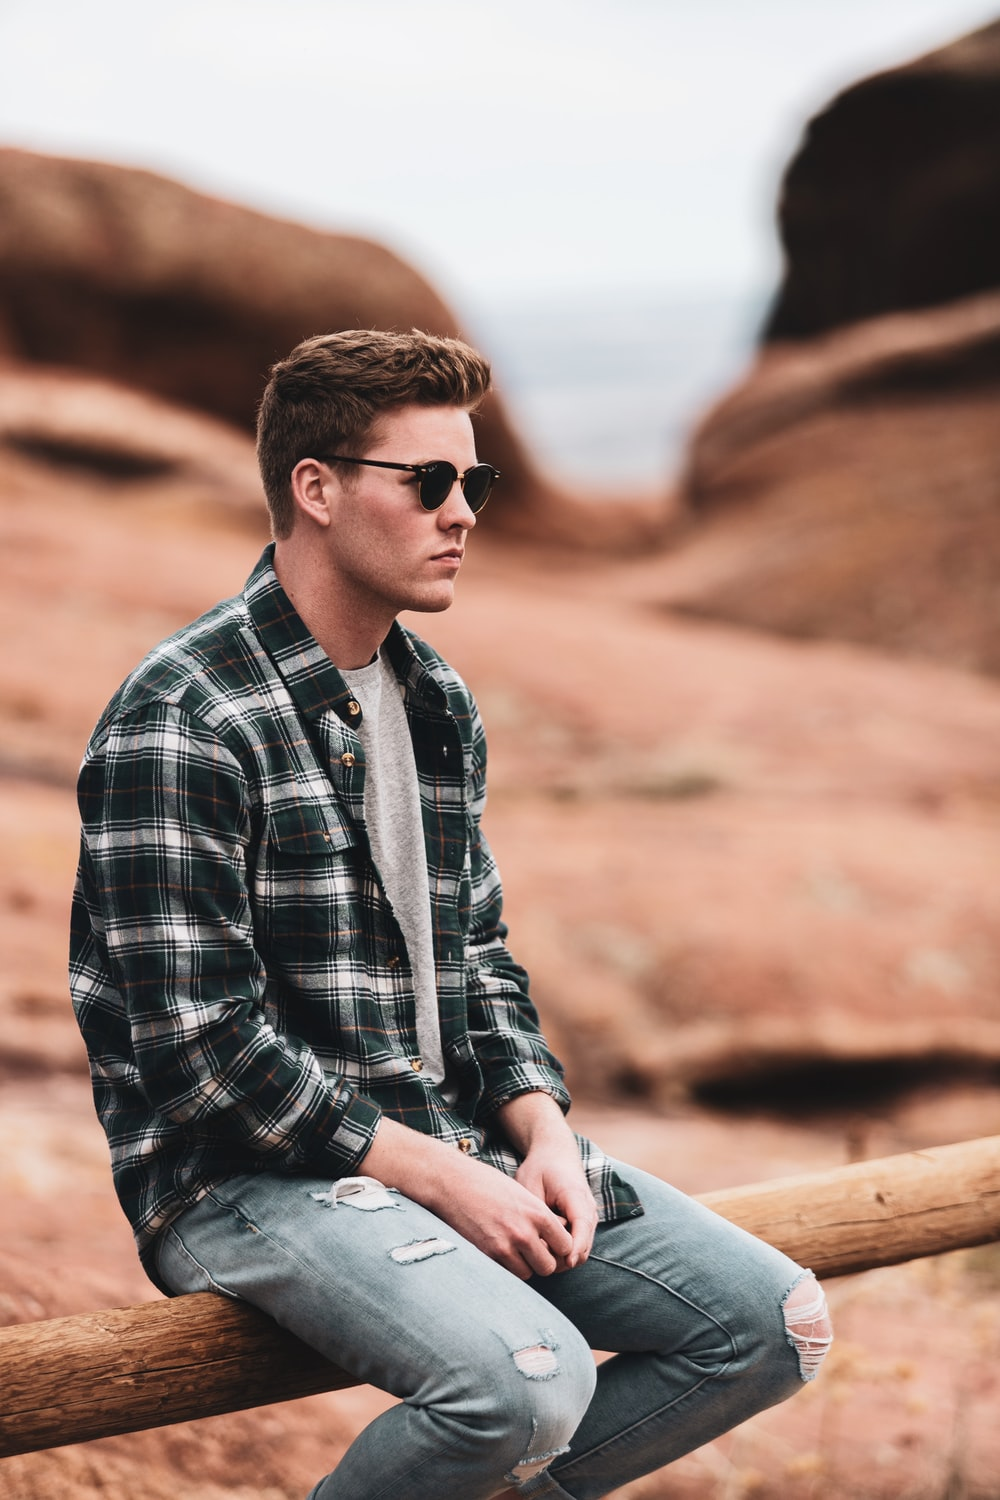 man in black and white plaid dress shirt wearing black sunglasses sitting on brown rock during